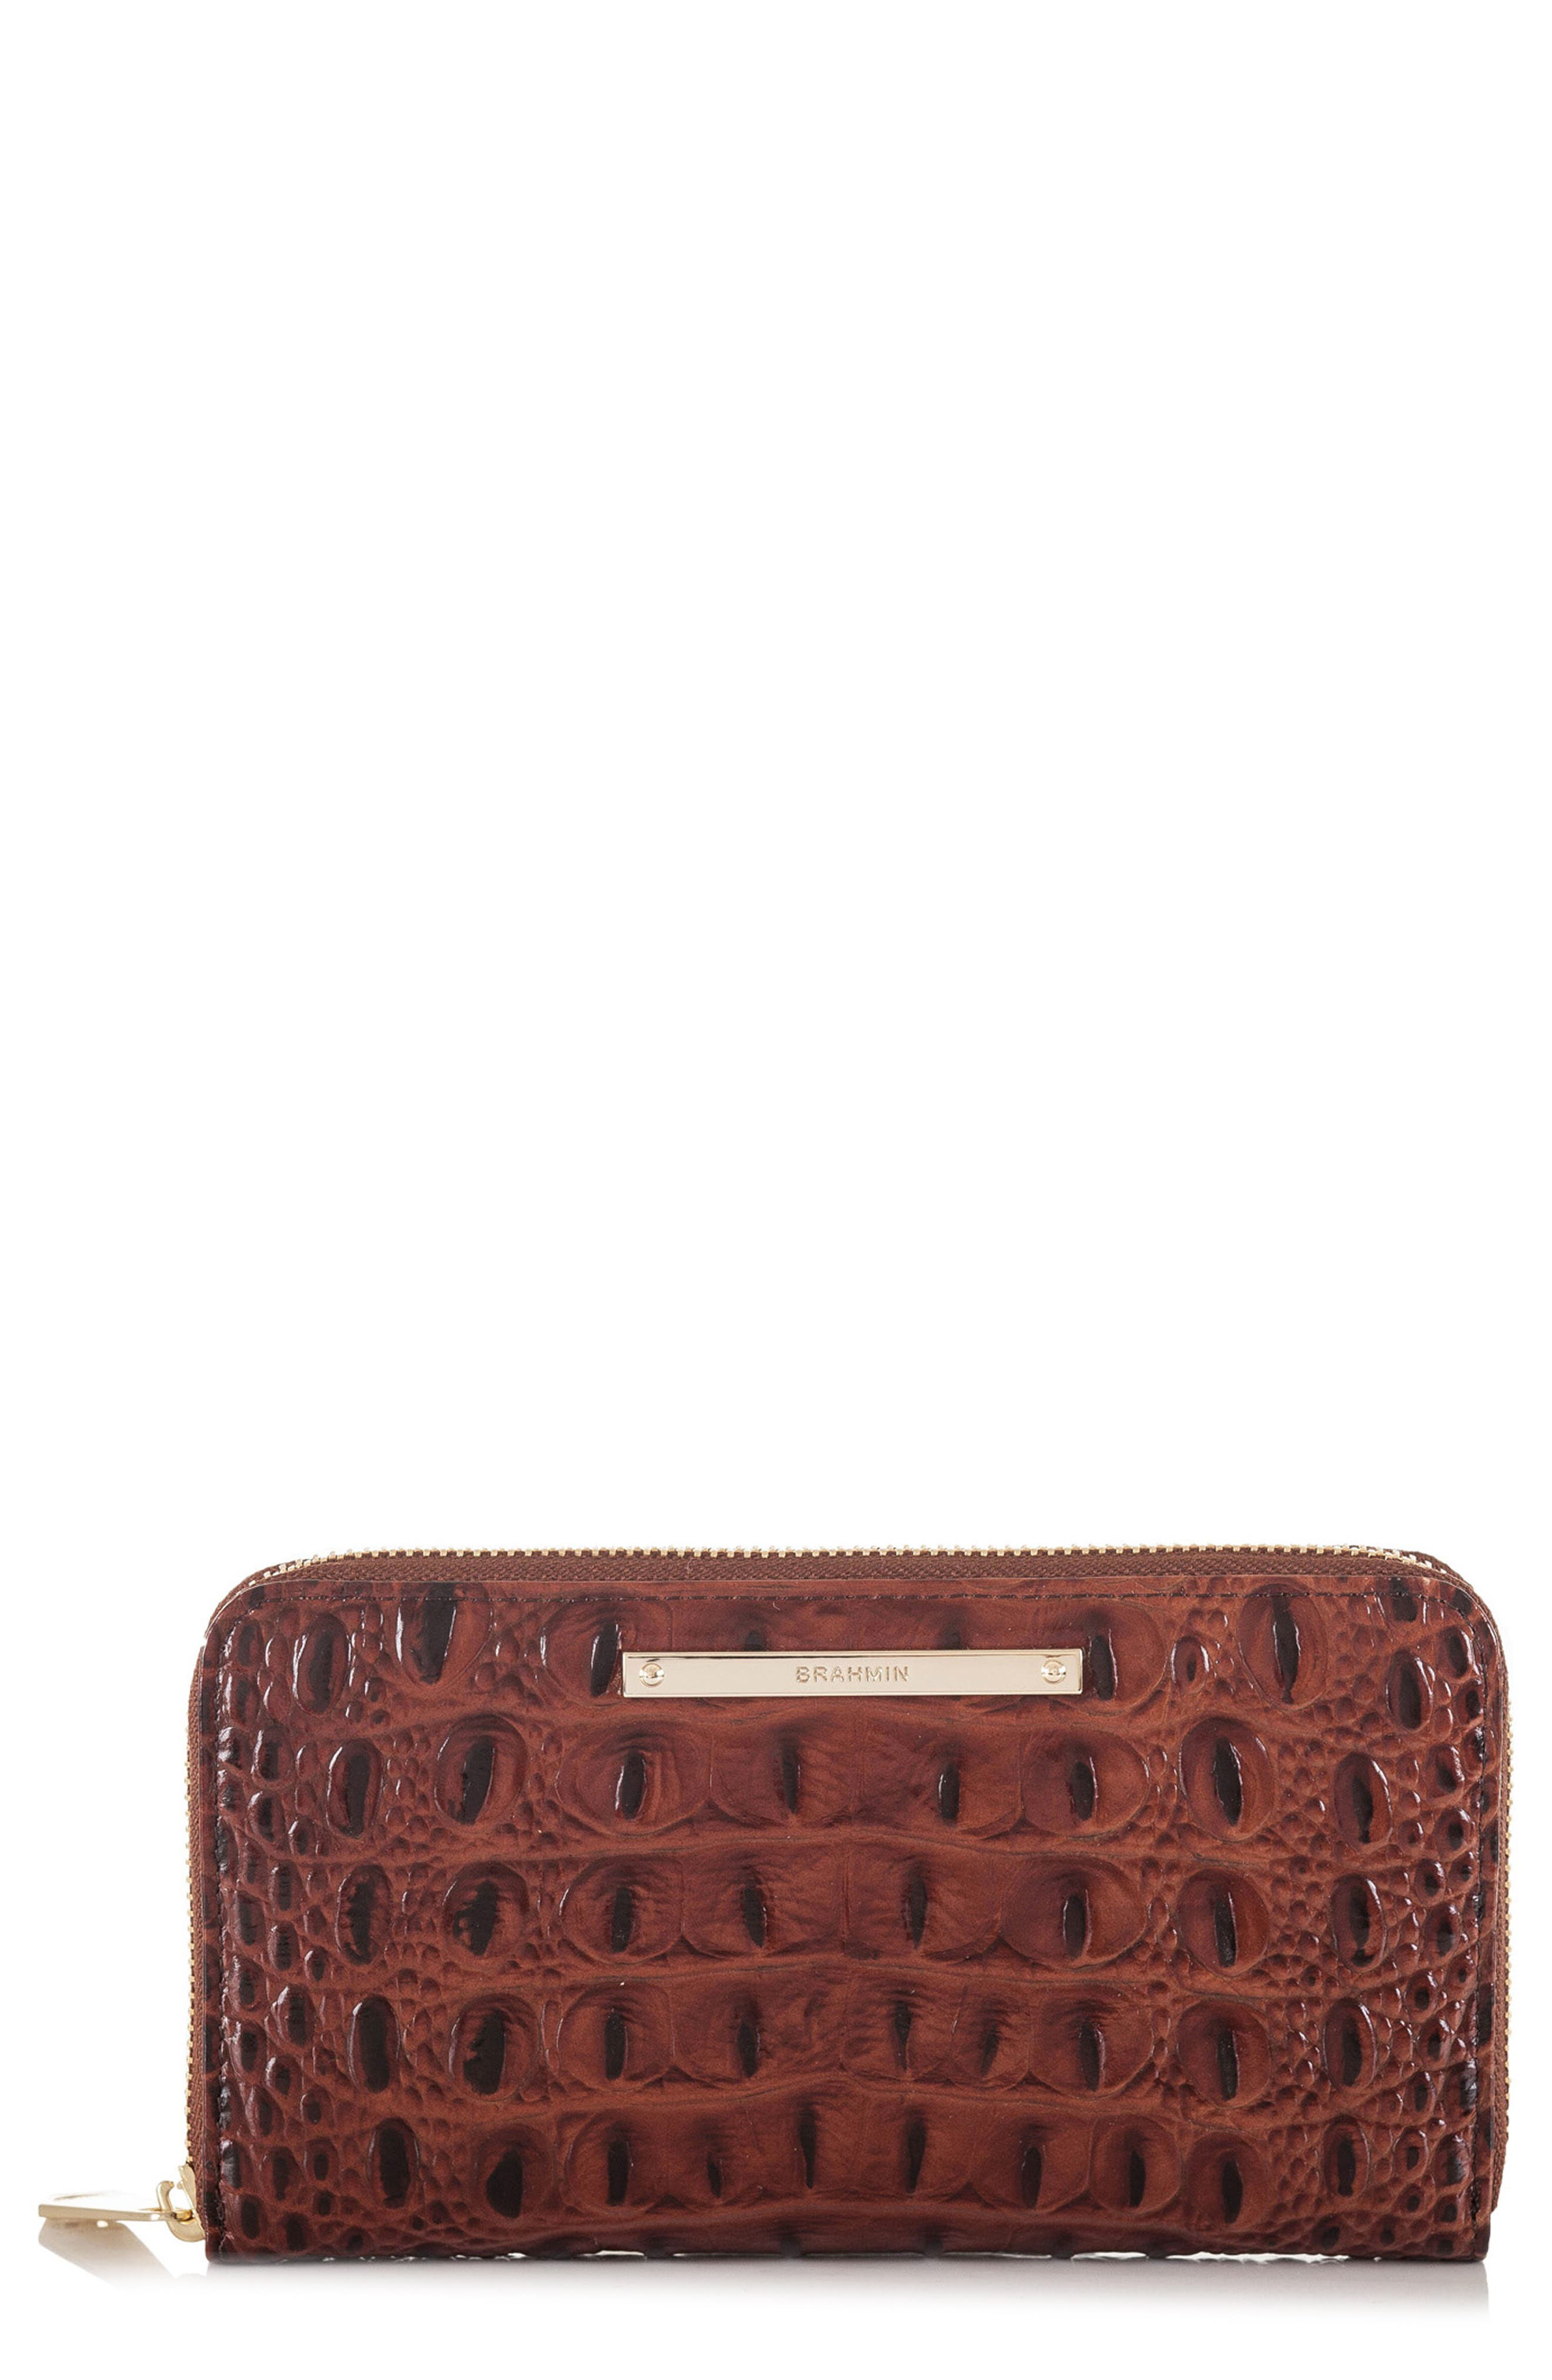 Main Image - Brahmin 'Suri' Zip Around Wallet